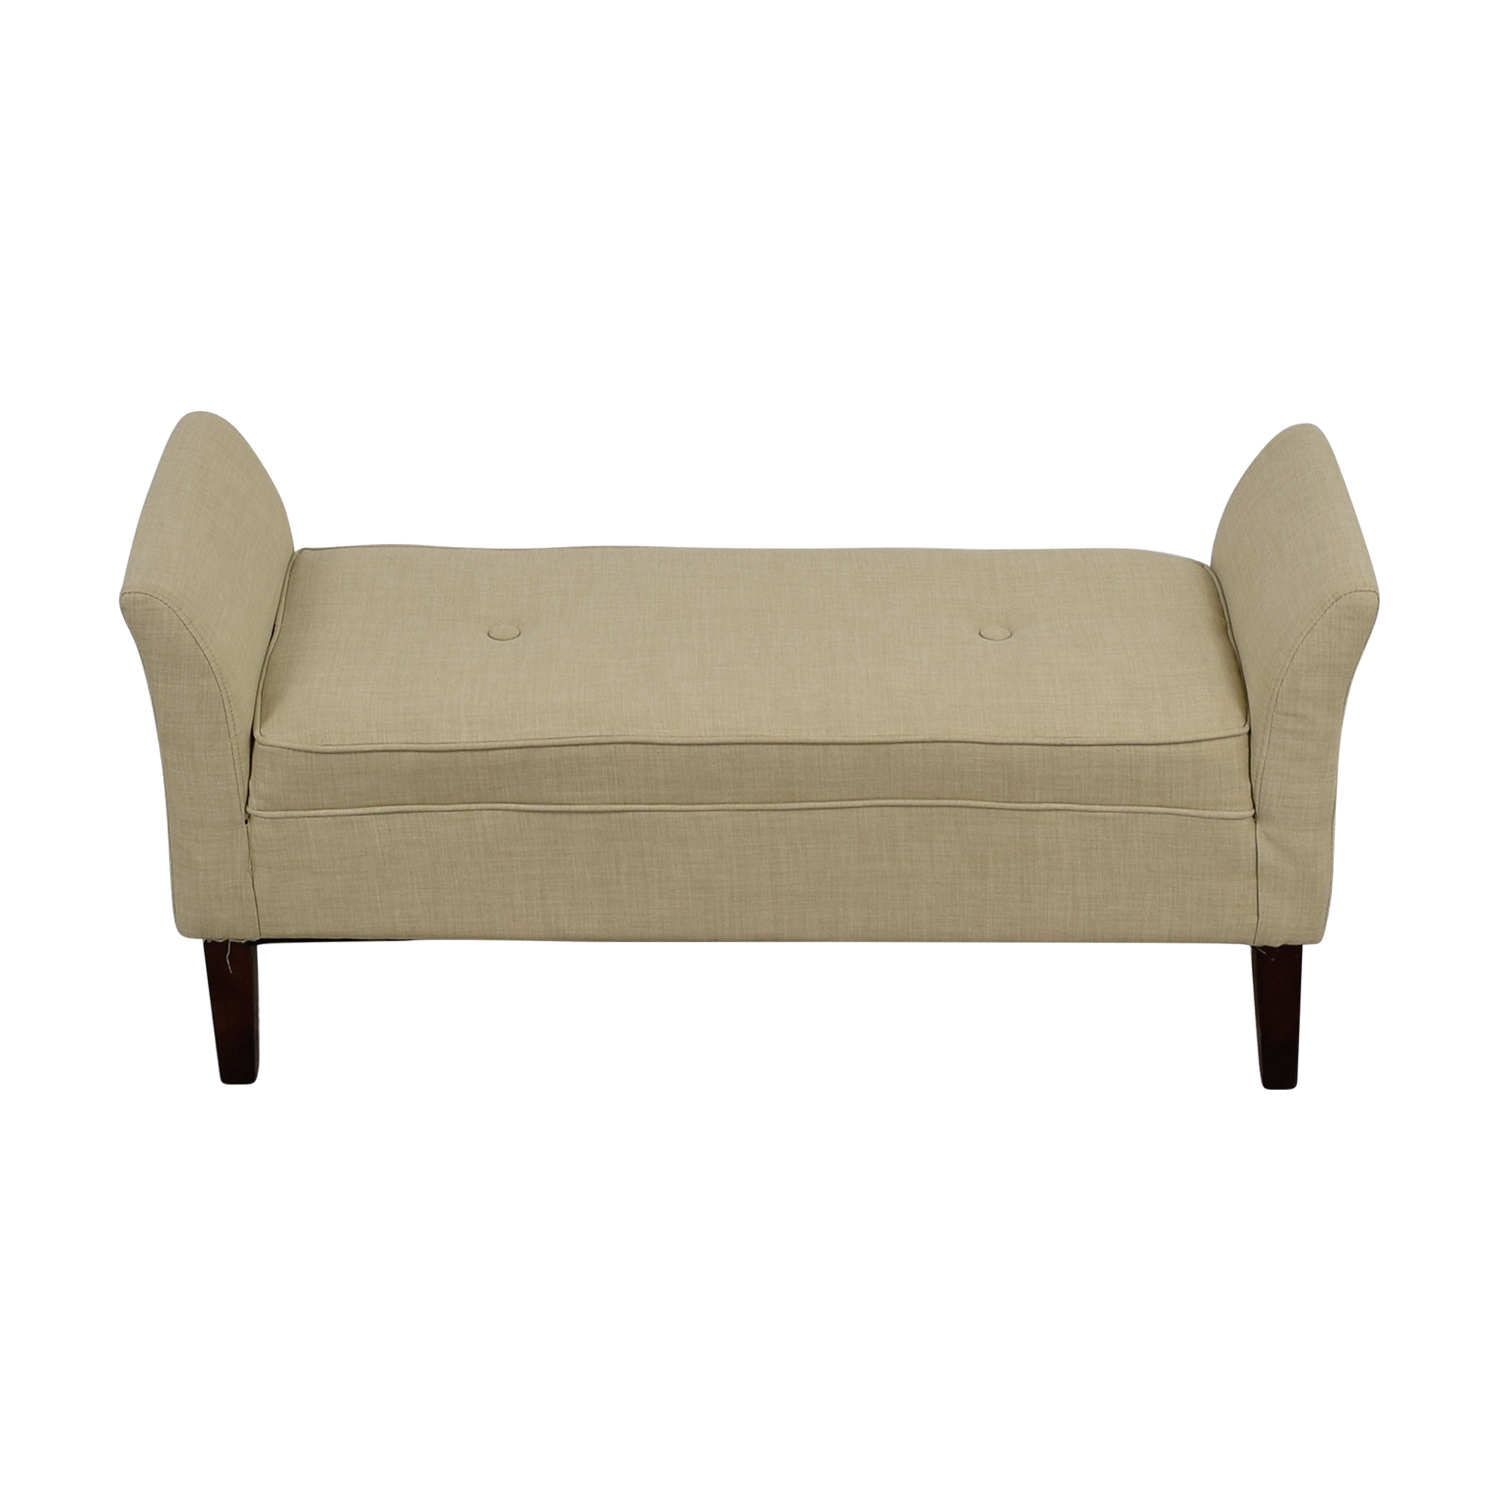 Threshold Threshold Beige Settee Bench on sale